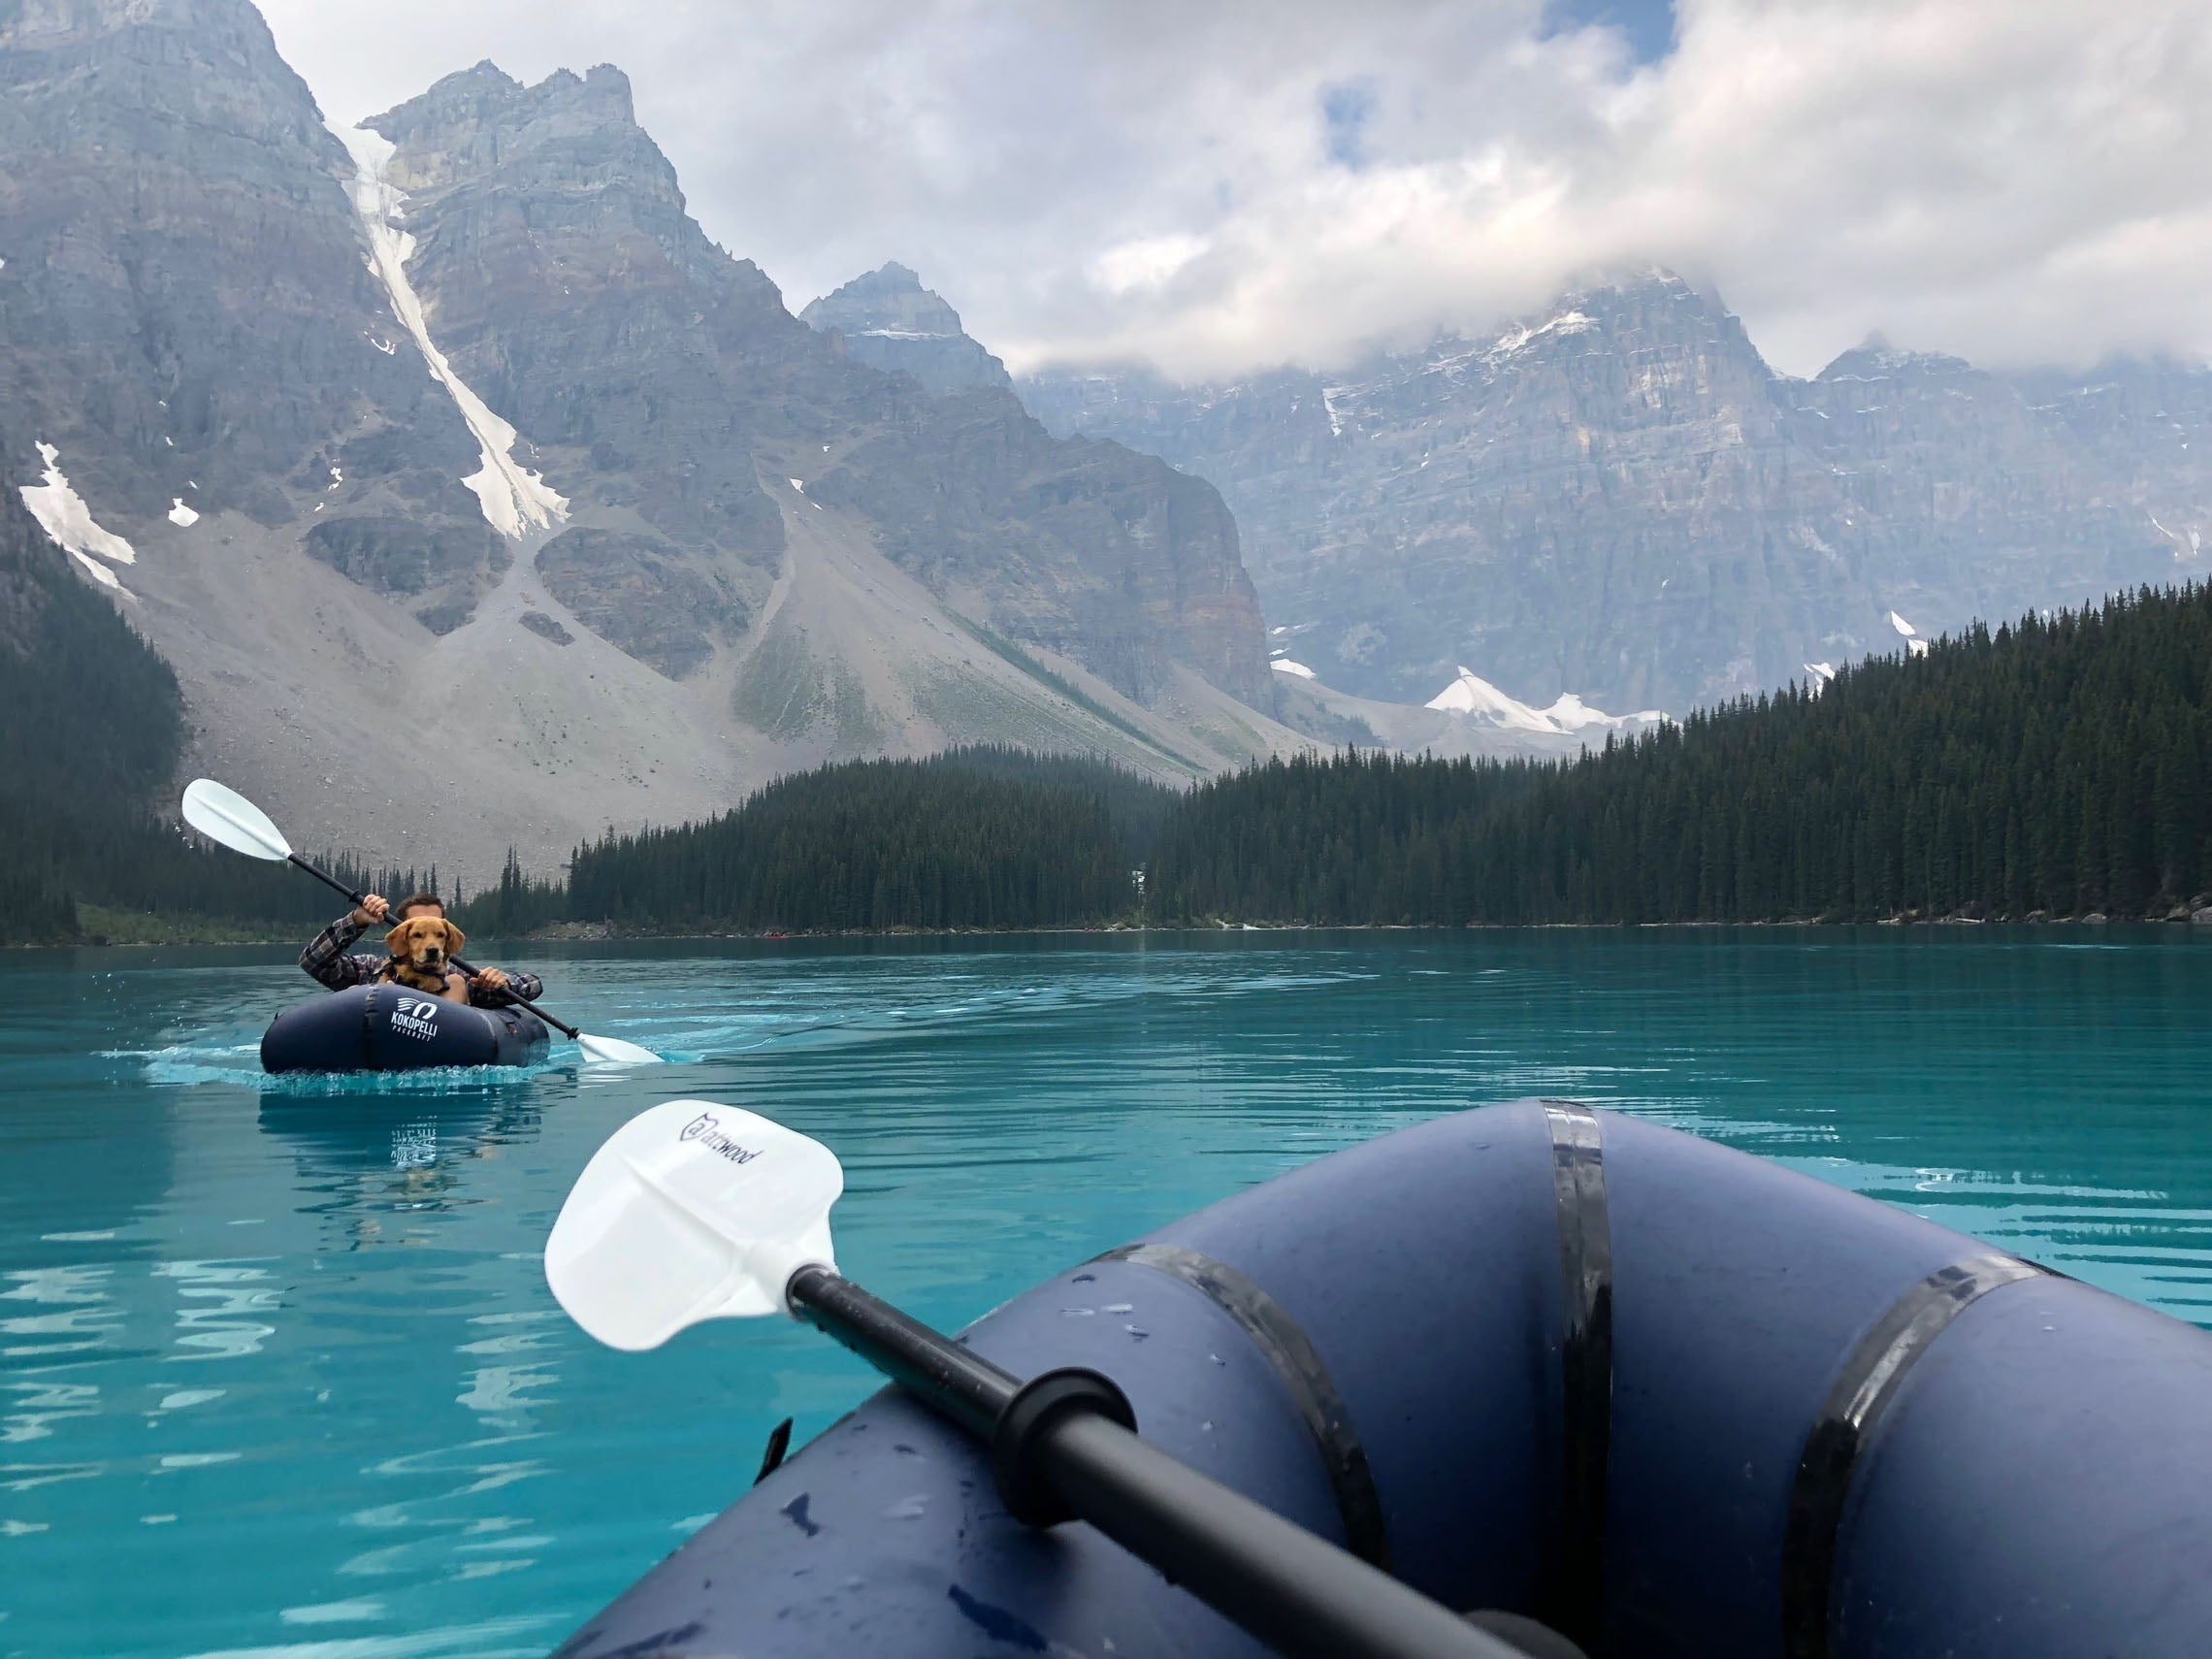 front of a packraft floating on clear water looking out to snow capped mountains and another packraft with a dog and a man in it